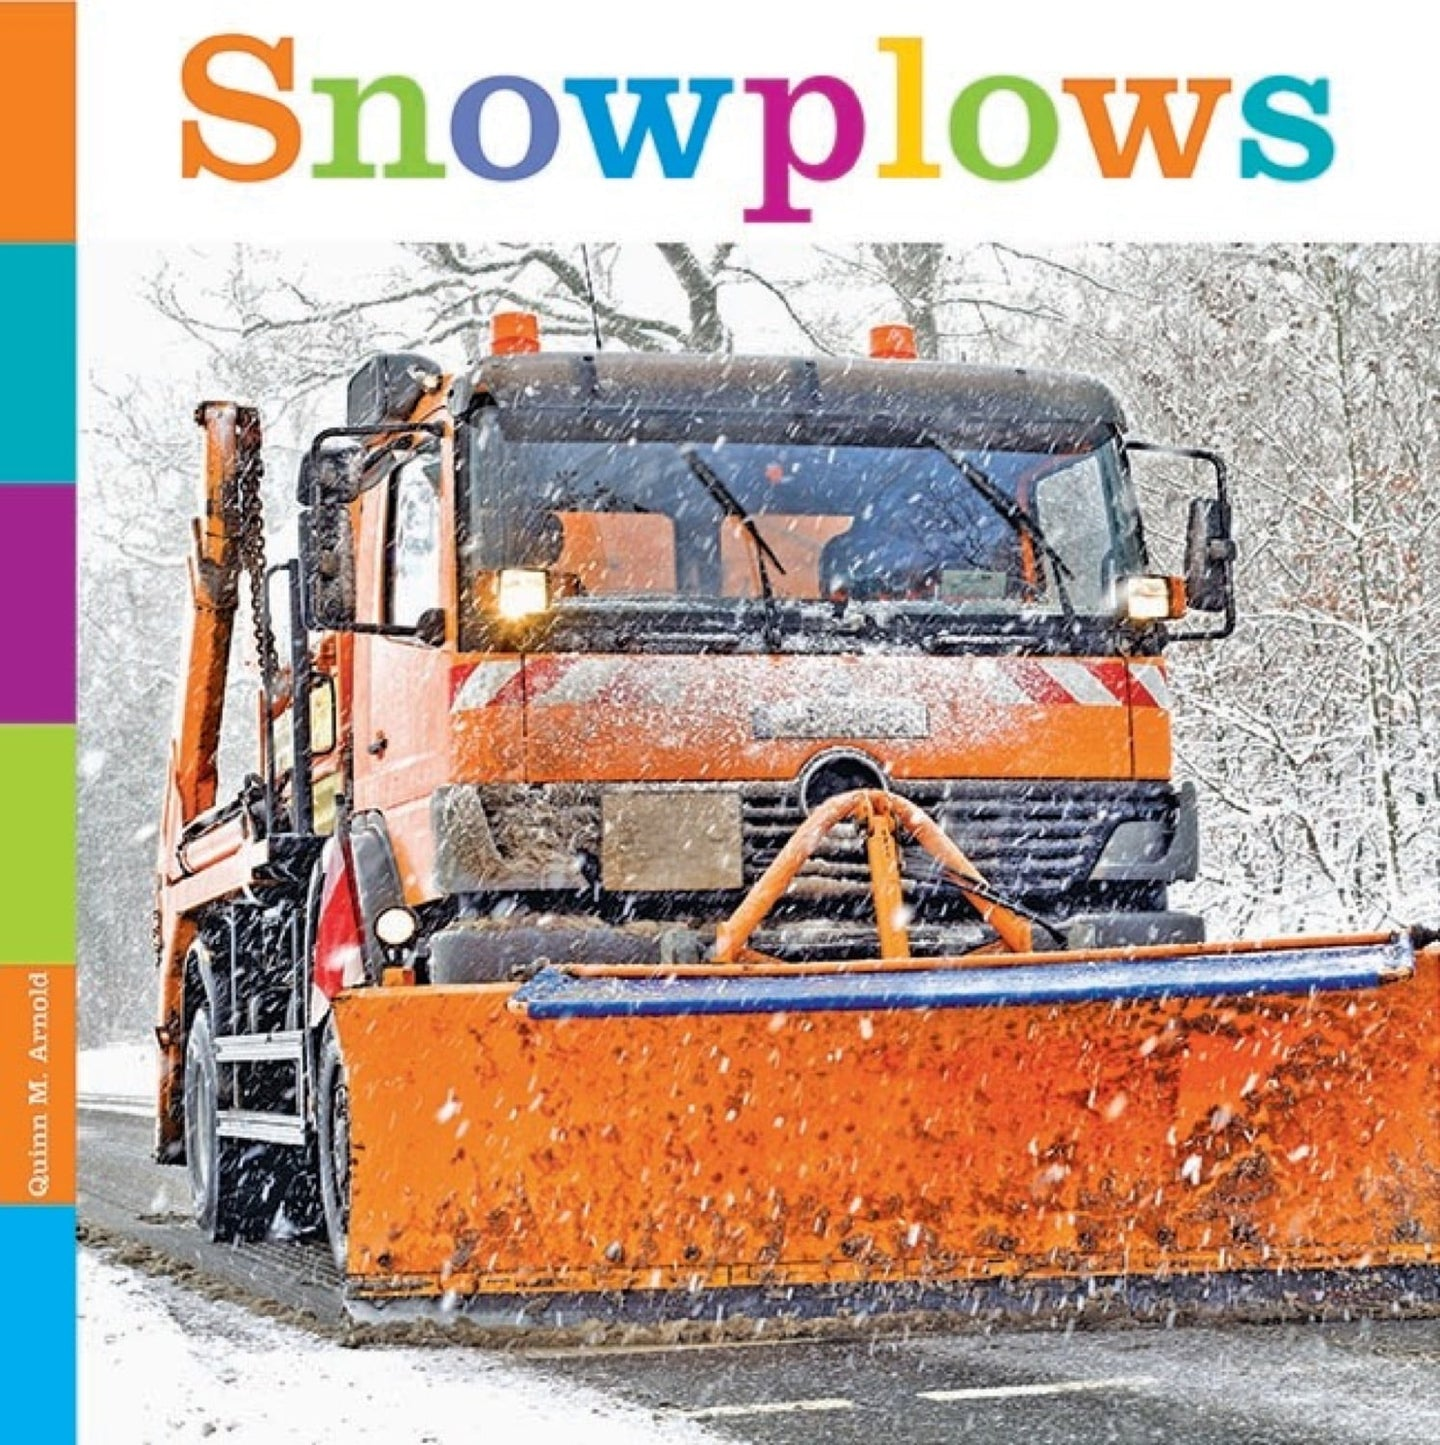 Seedlings: Snowplows